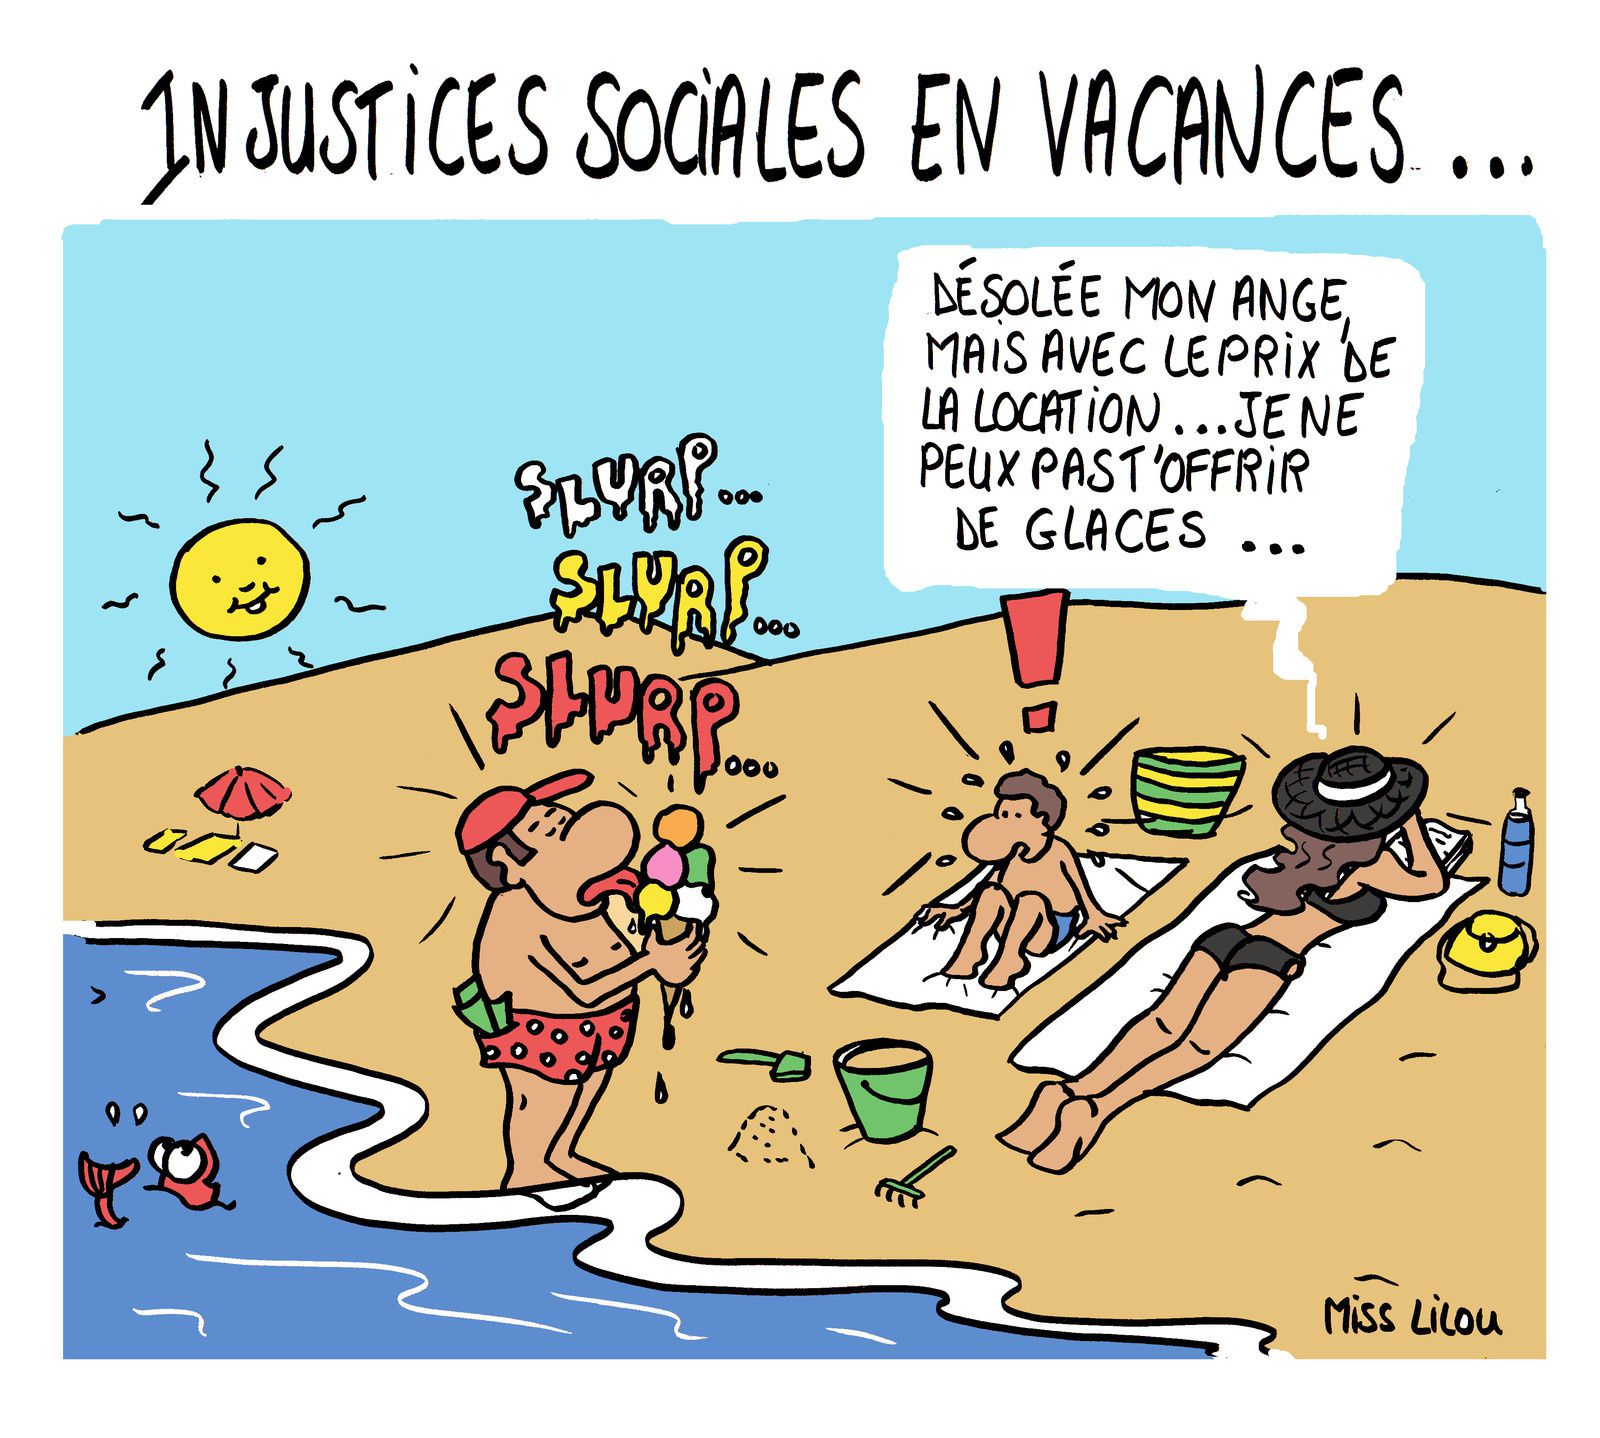 Injustices sociales en vacances...